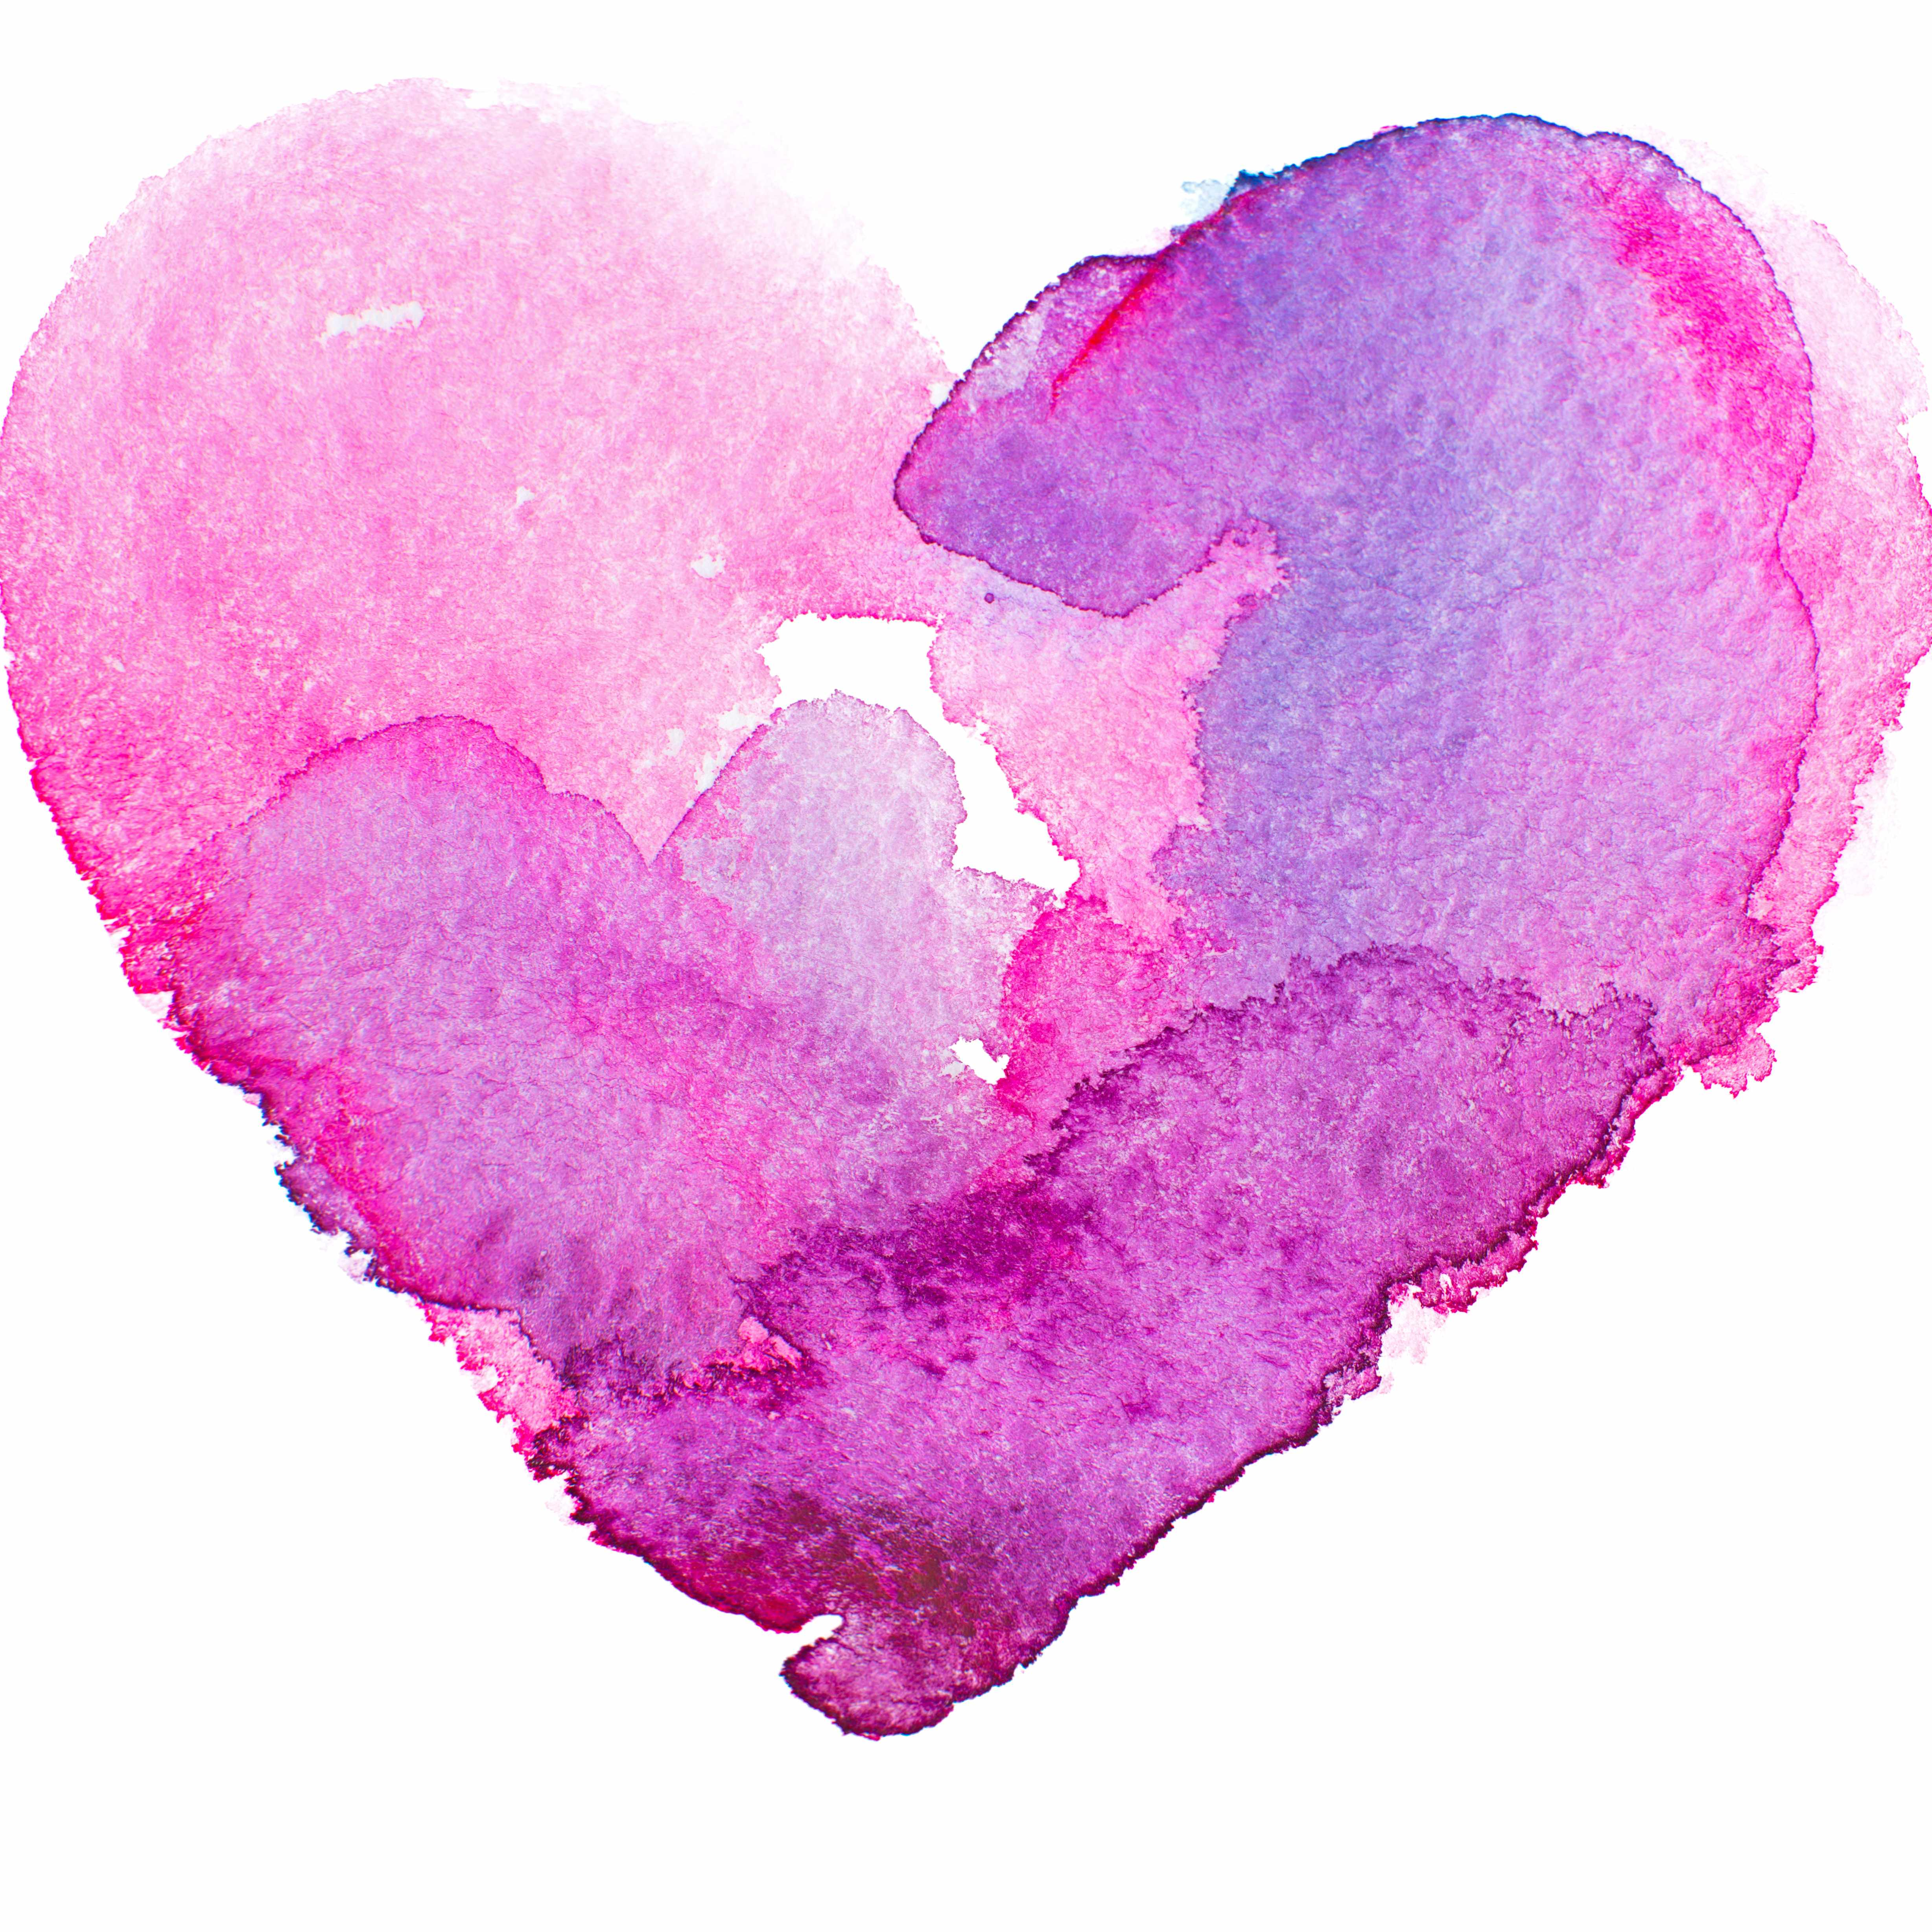 a watercolor graphic of a heart in pinks and purples